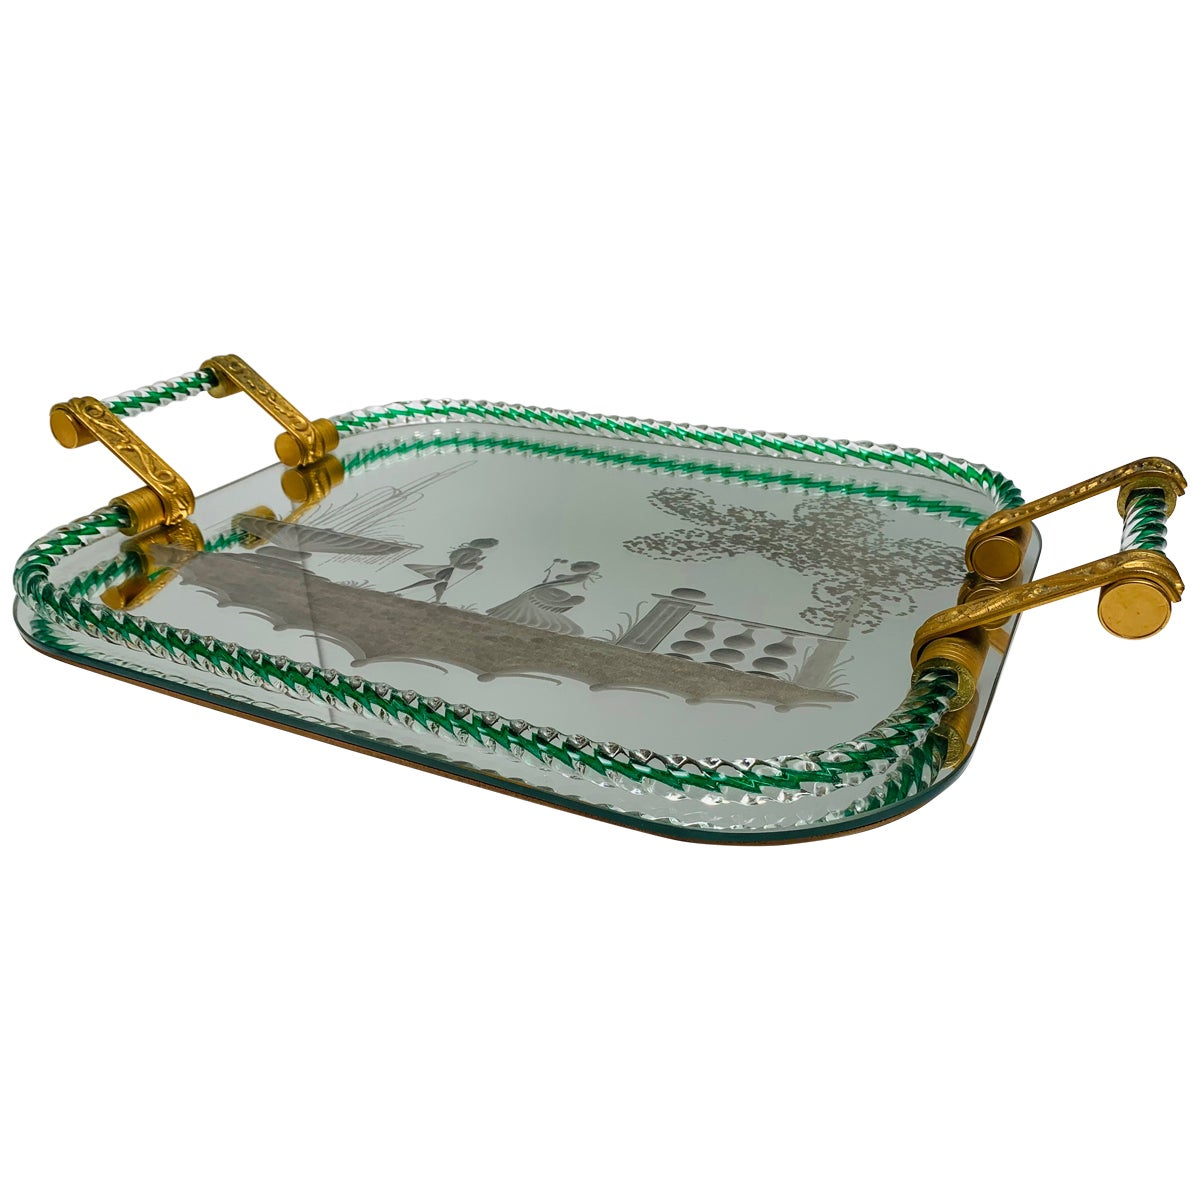 Large Vintage Venetian Mirrored Tray, Brass Cast Handles, Green Rope Detail